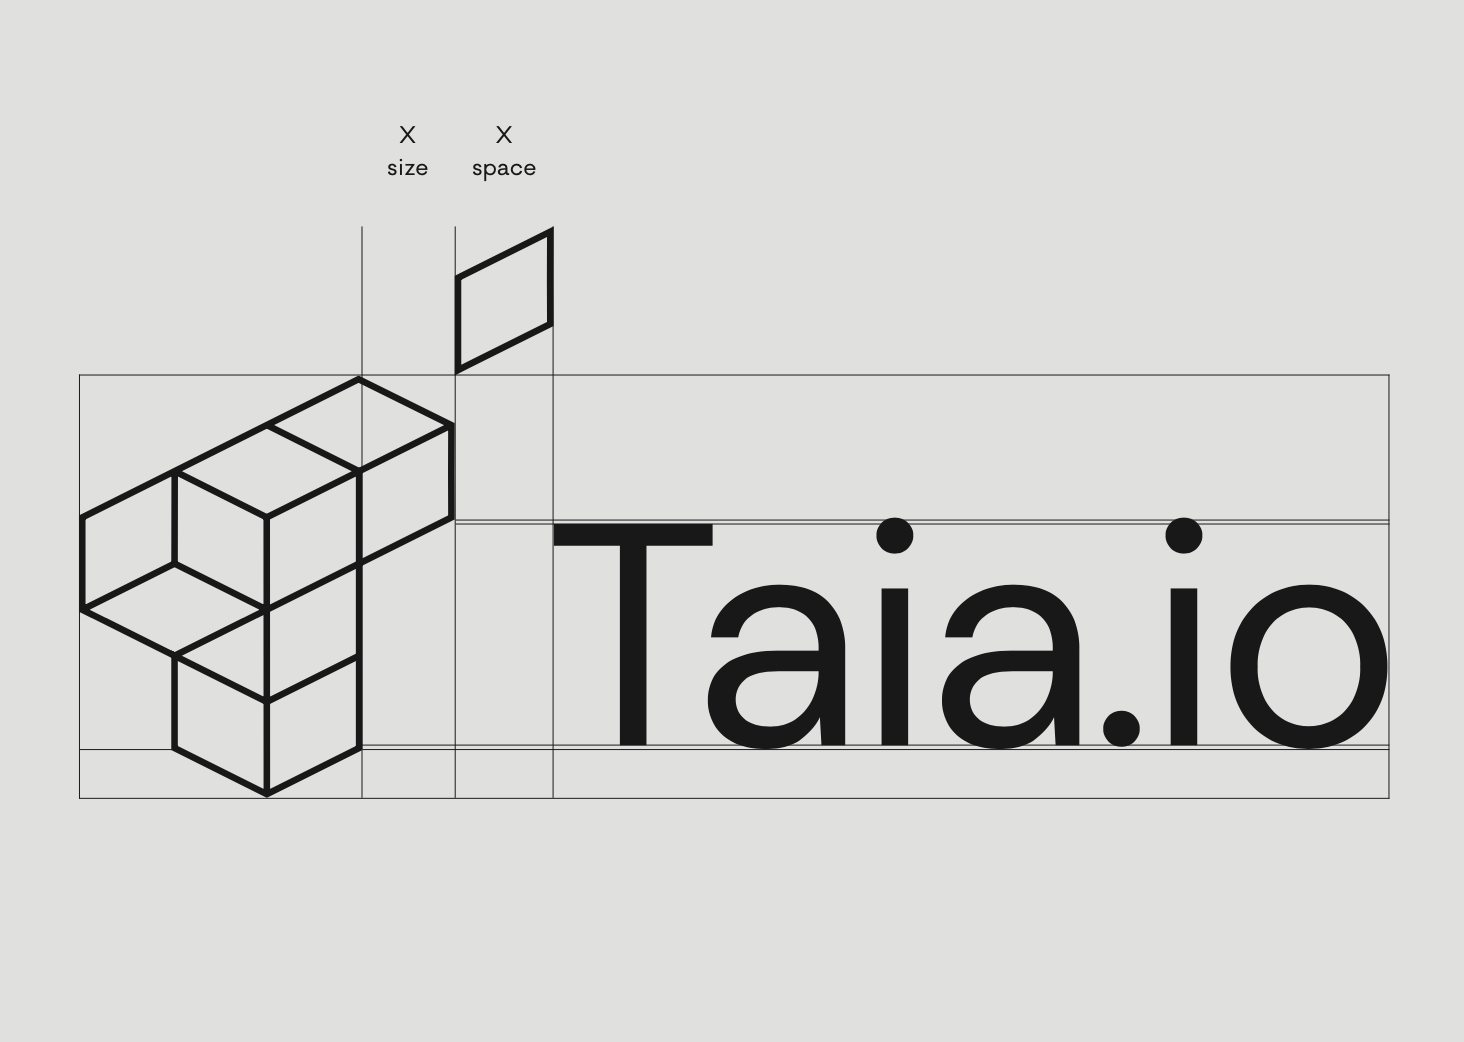 Guideline for Taia's logo